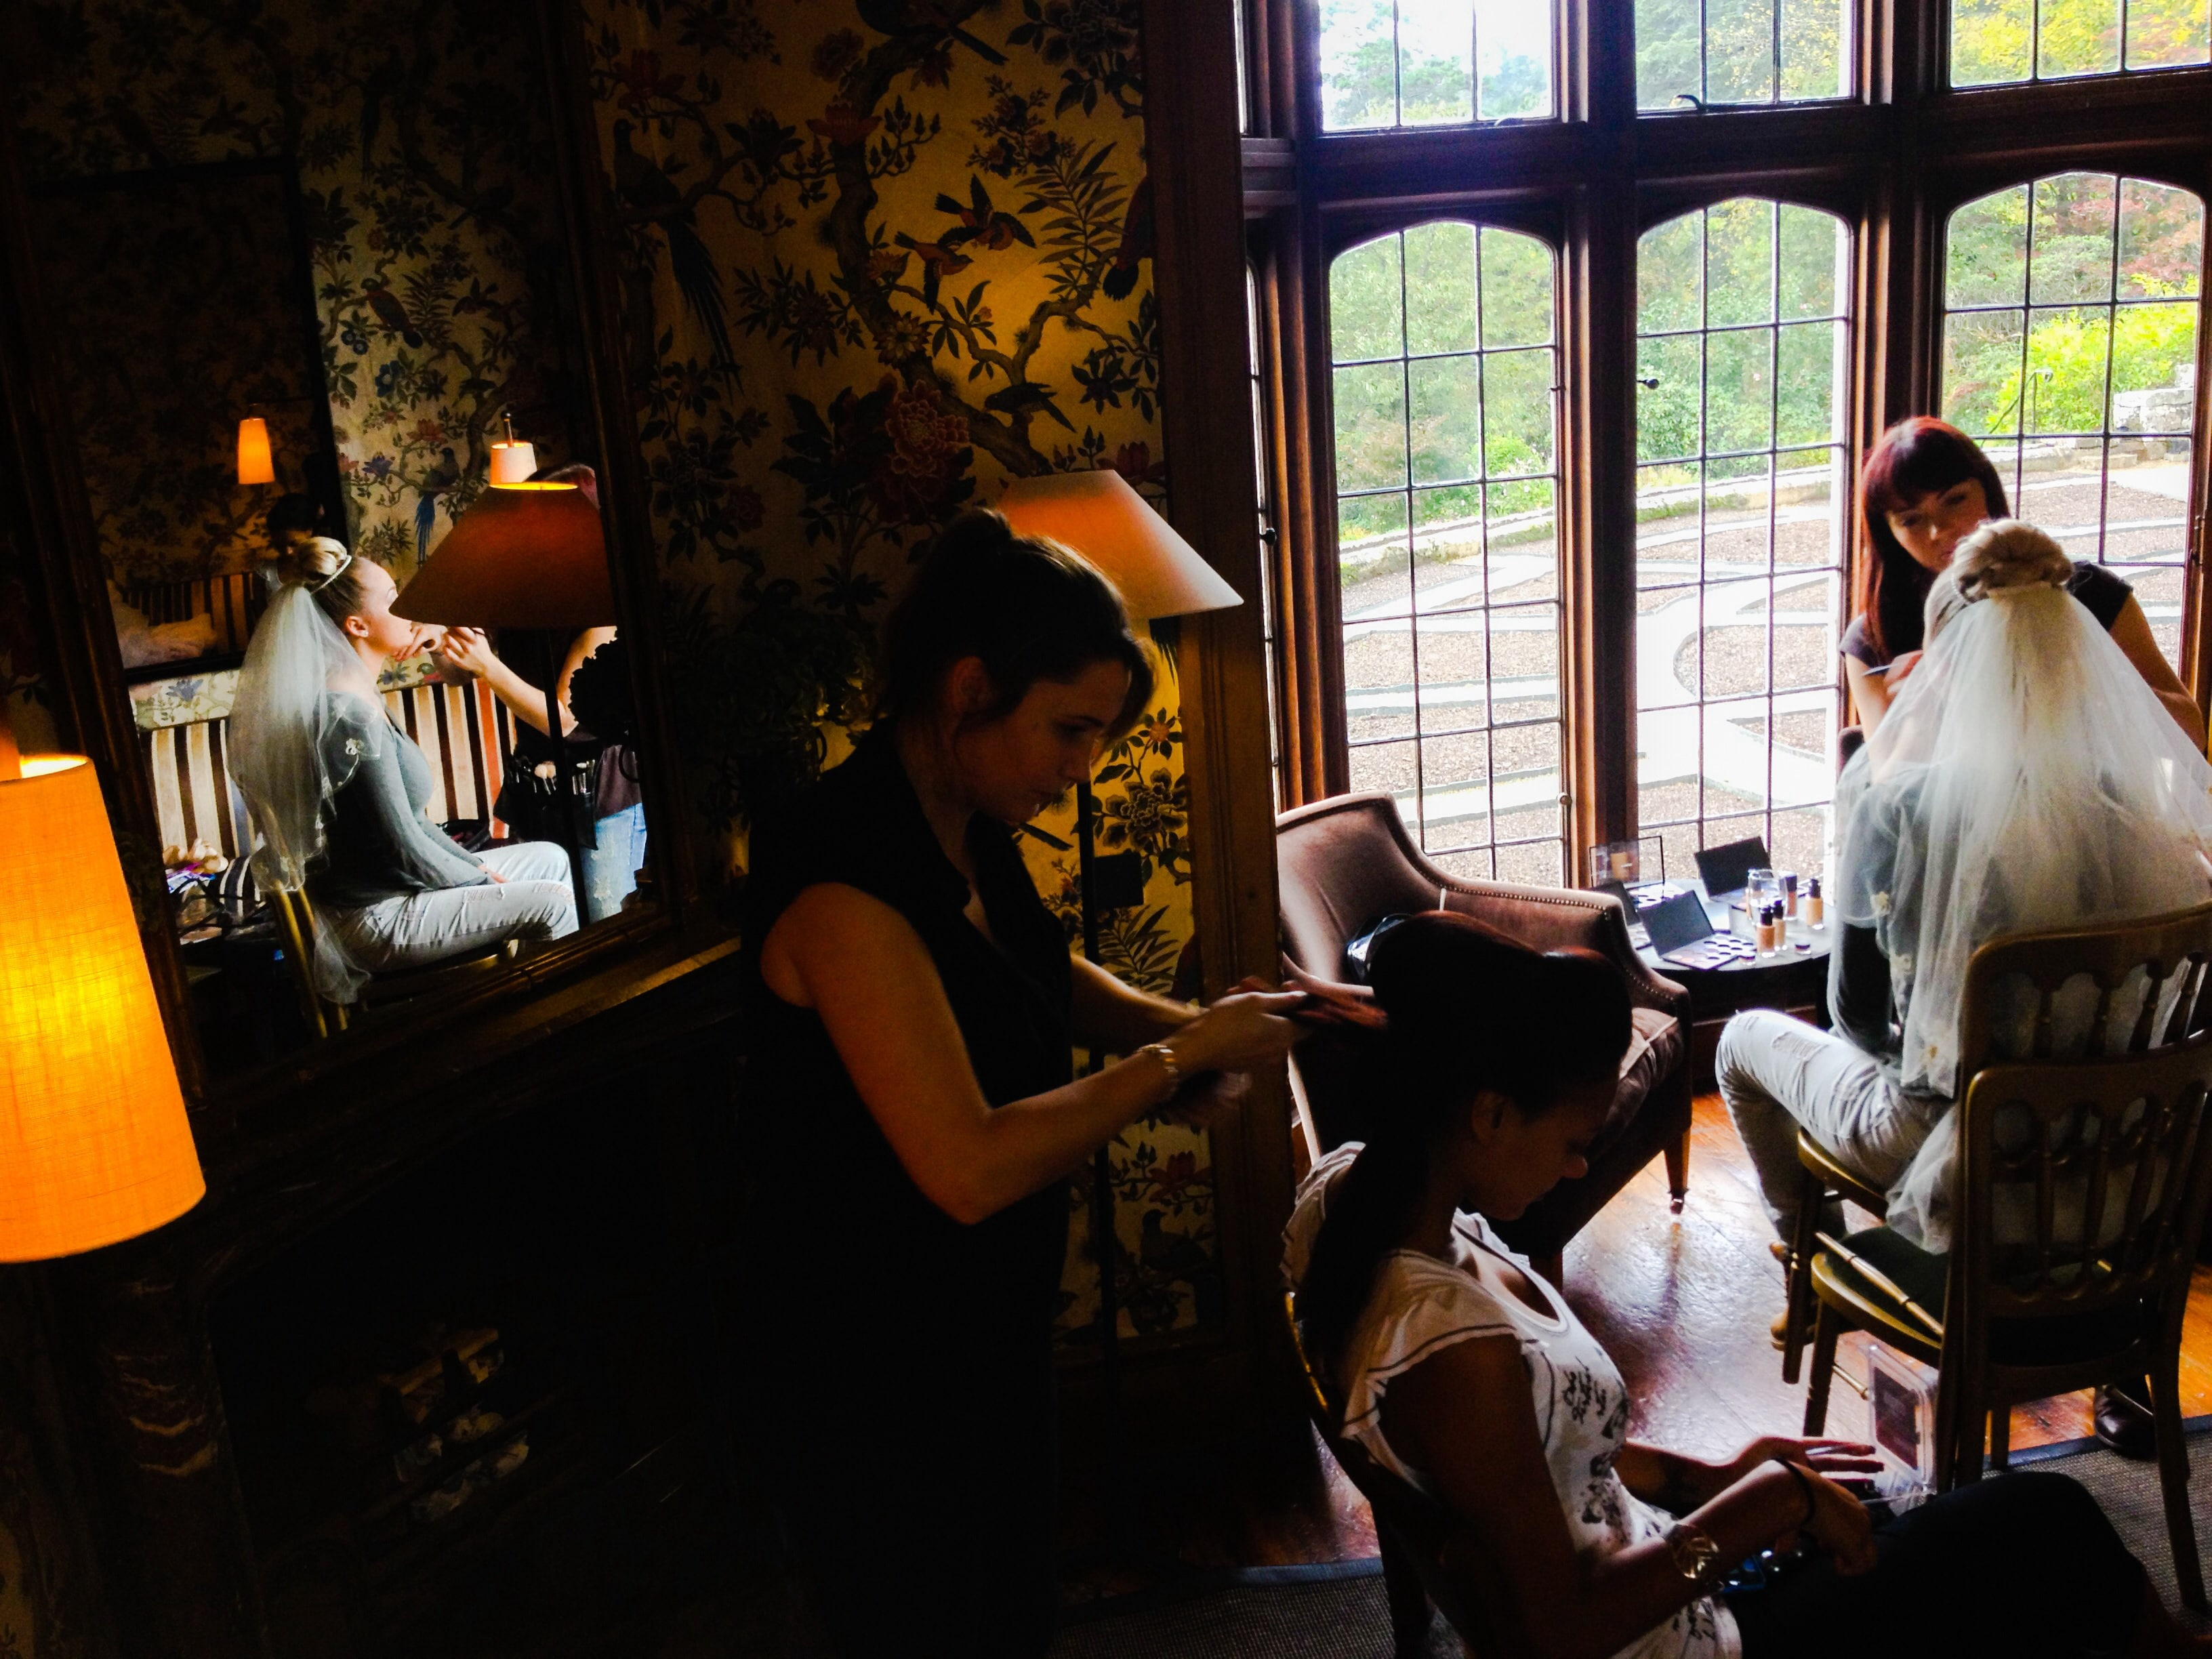 Hotel Endsleigh behind the scenes with Pete Bennett photography